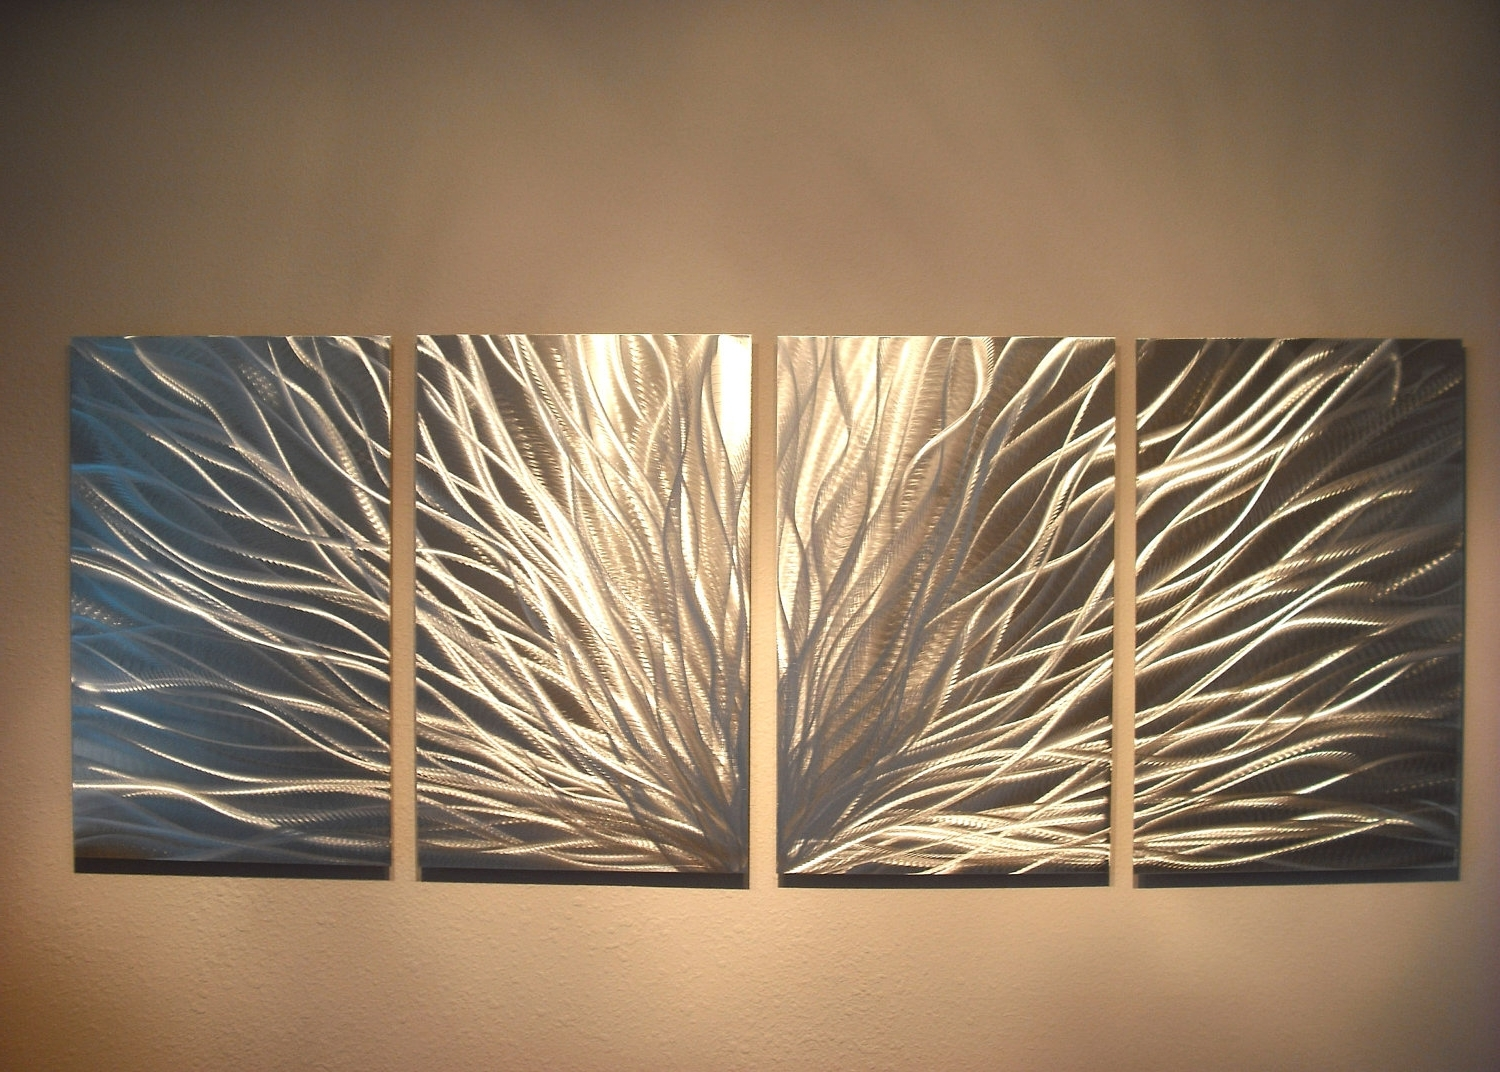 Most Current Large Metal Wall Art Within Radiance – Abstract Metal Wall Art Contemporary Modern Decor (View 3 of 15)